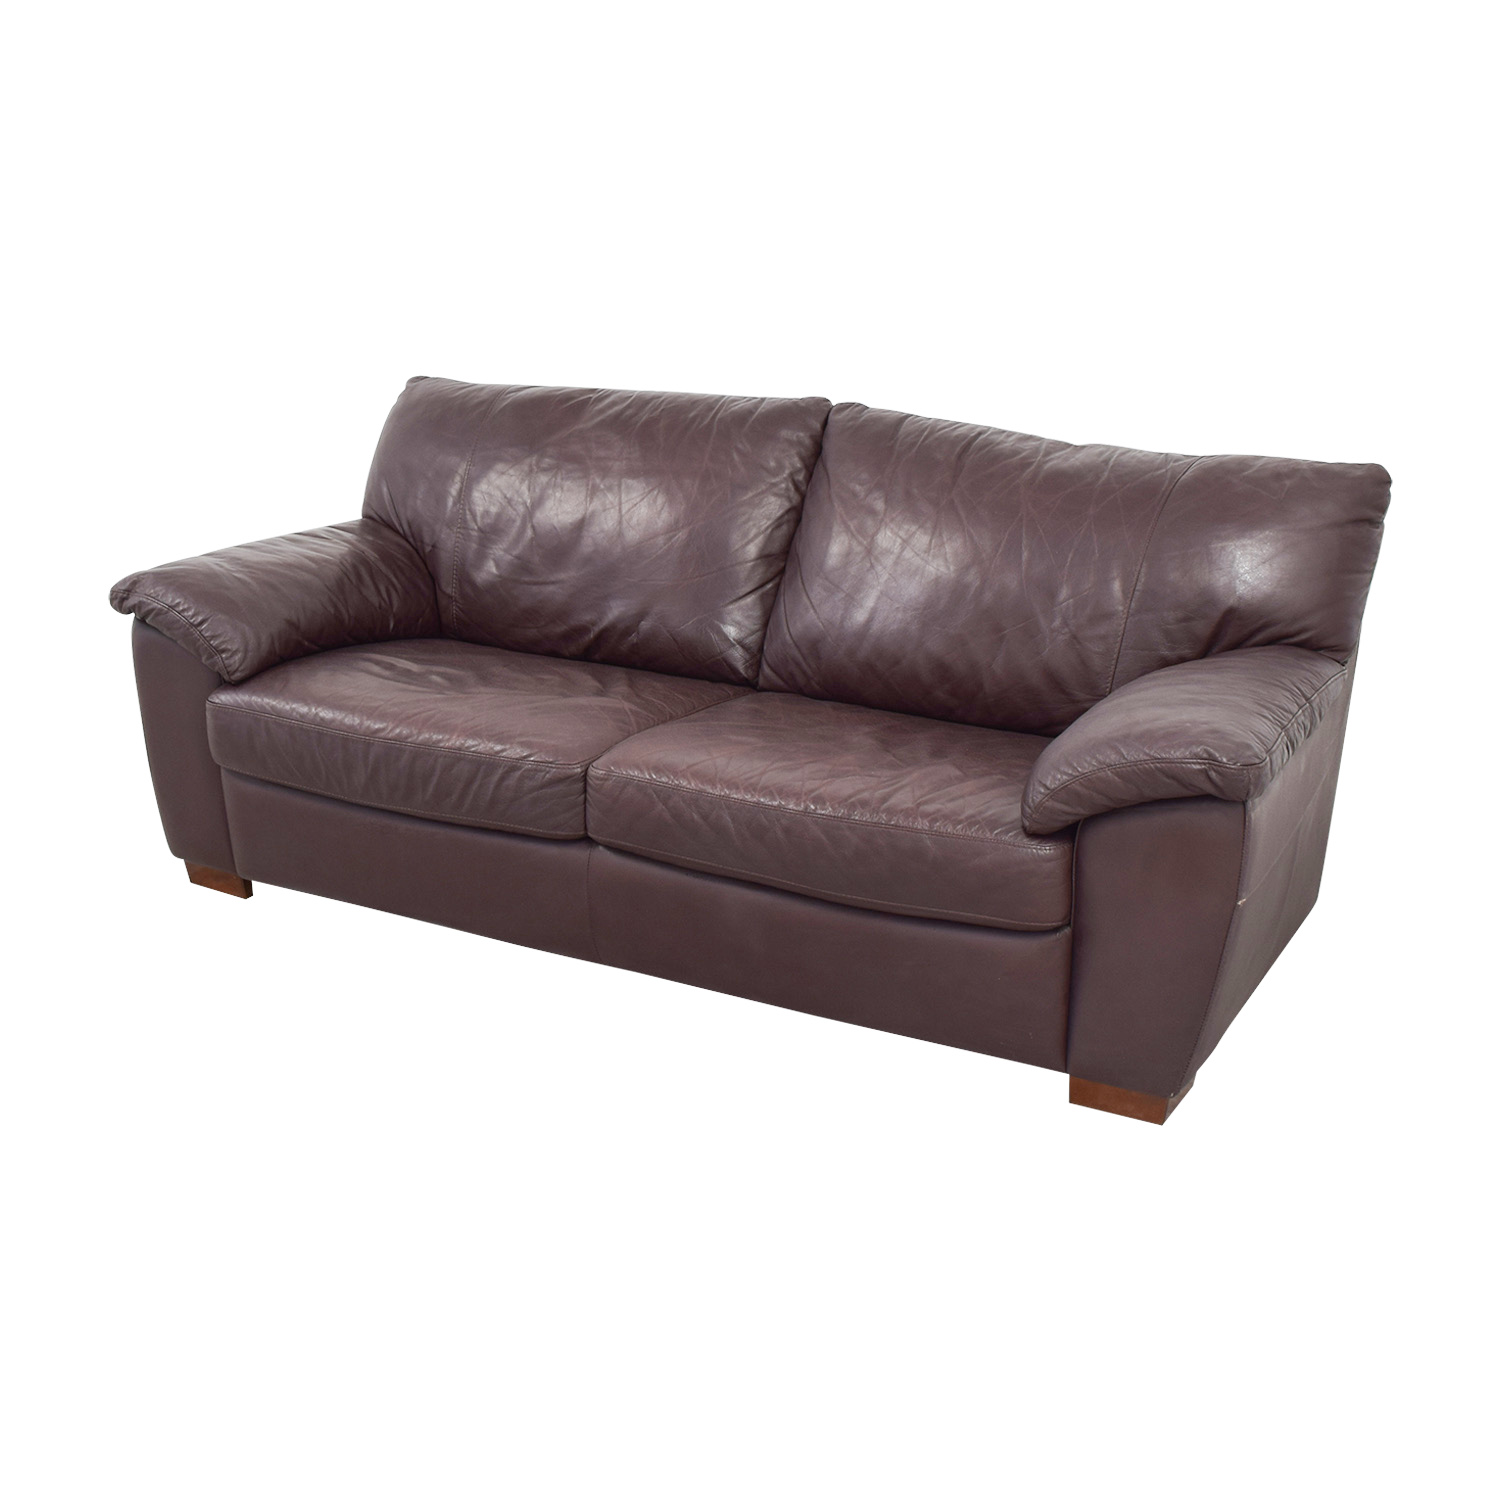 87 off ikea ikea vreta brown leather two cushion sofa